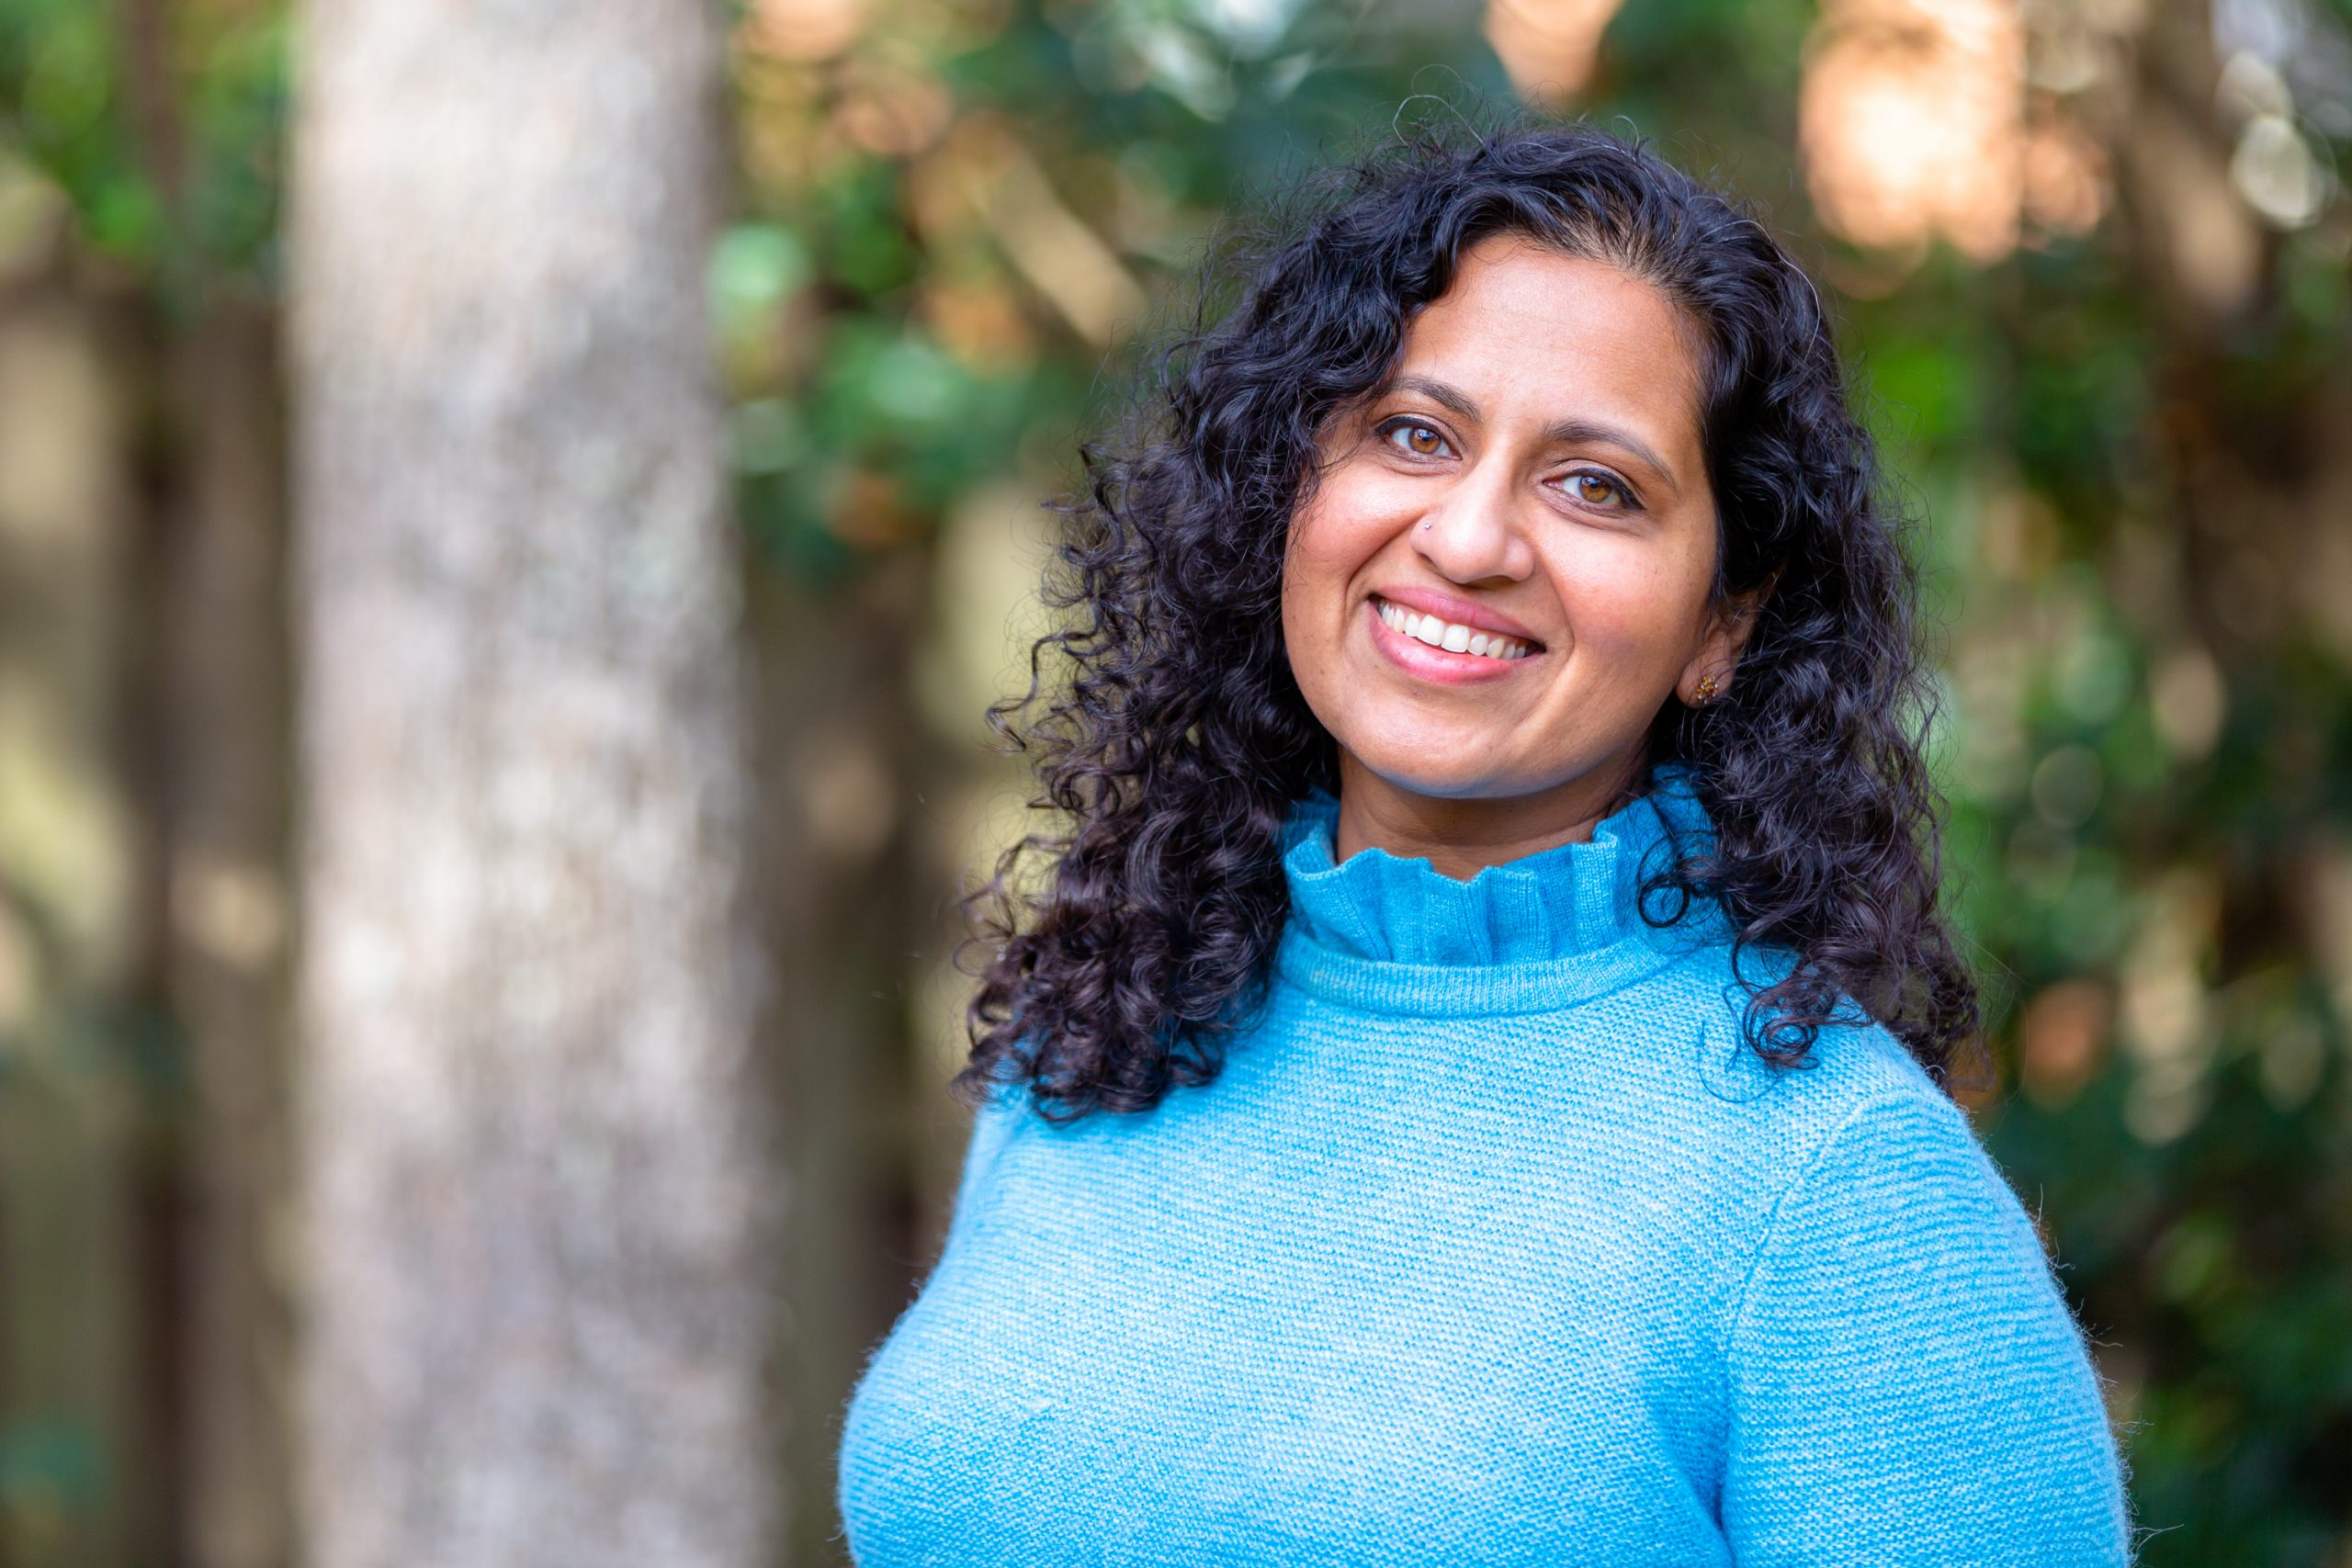 Picture of Aparna Polavarapu wearing a blue sweater, standing in front of trees